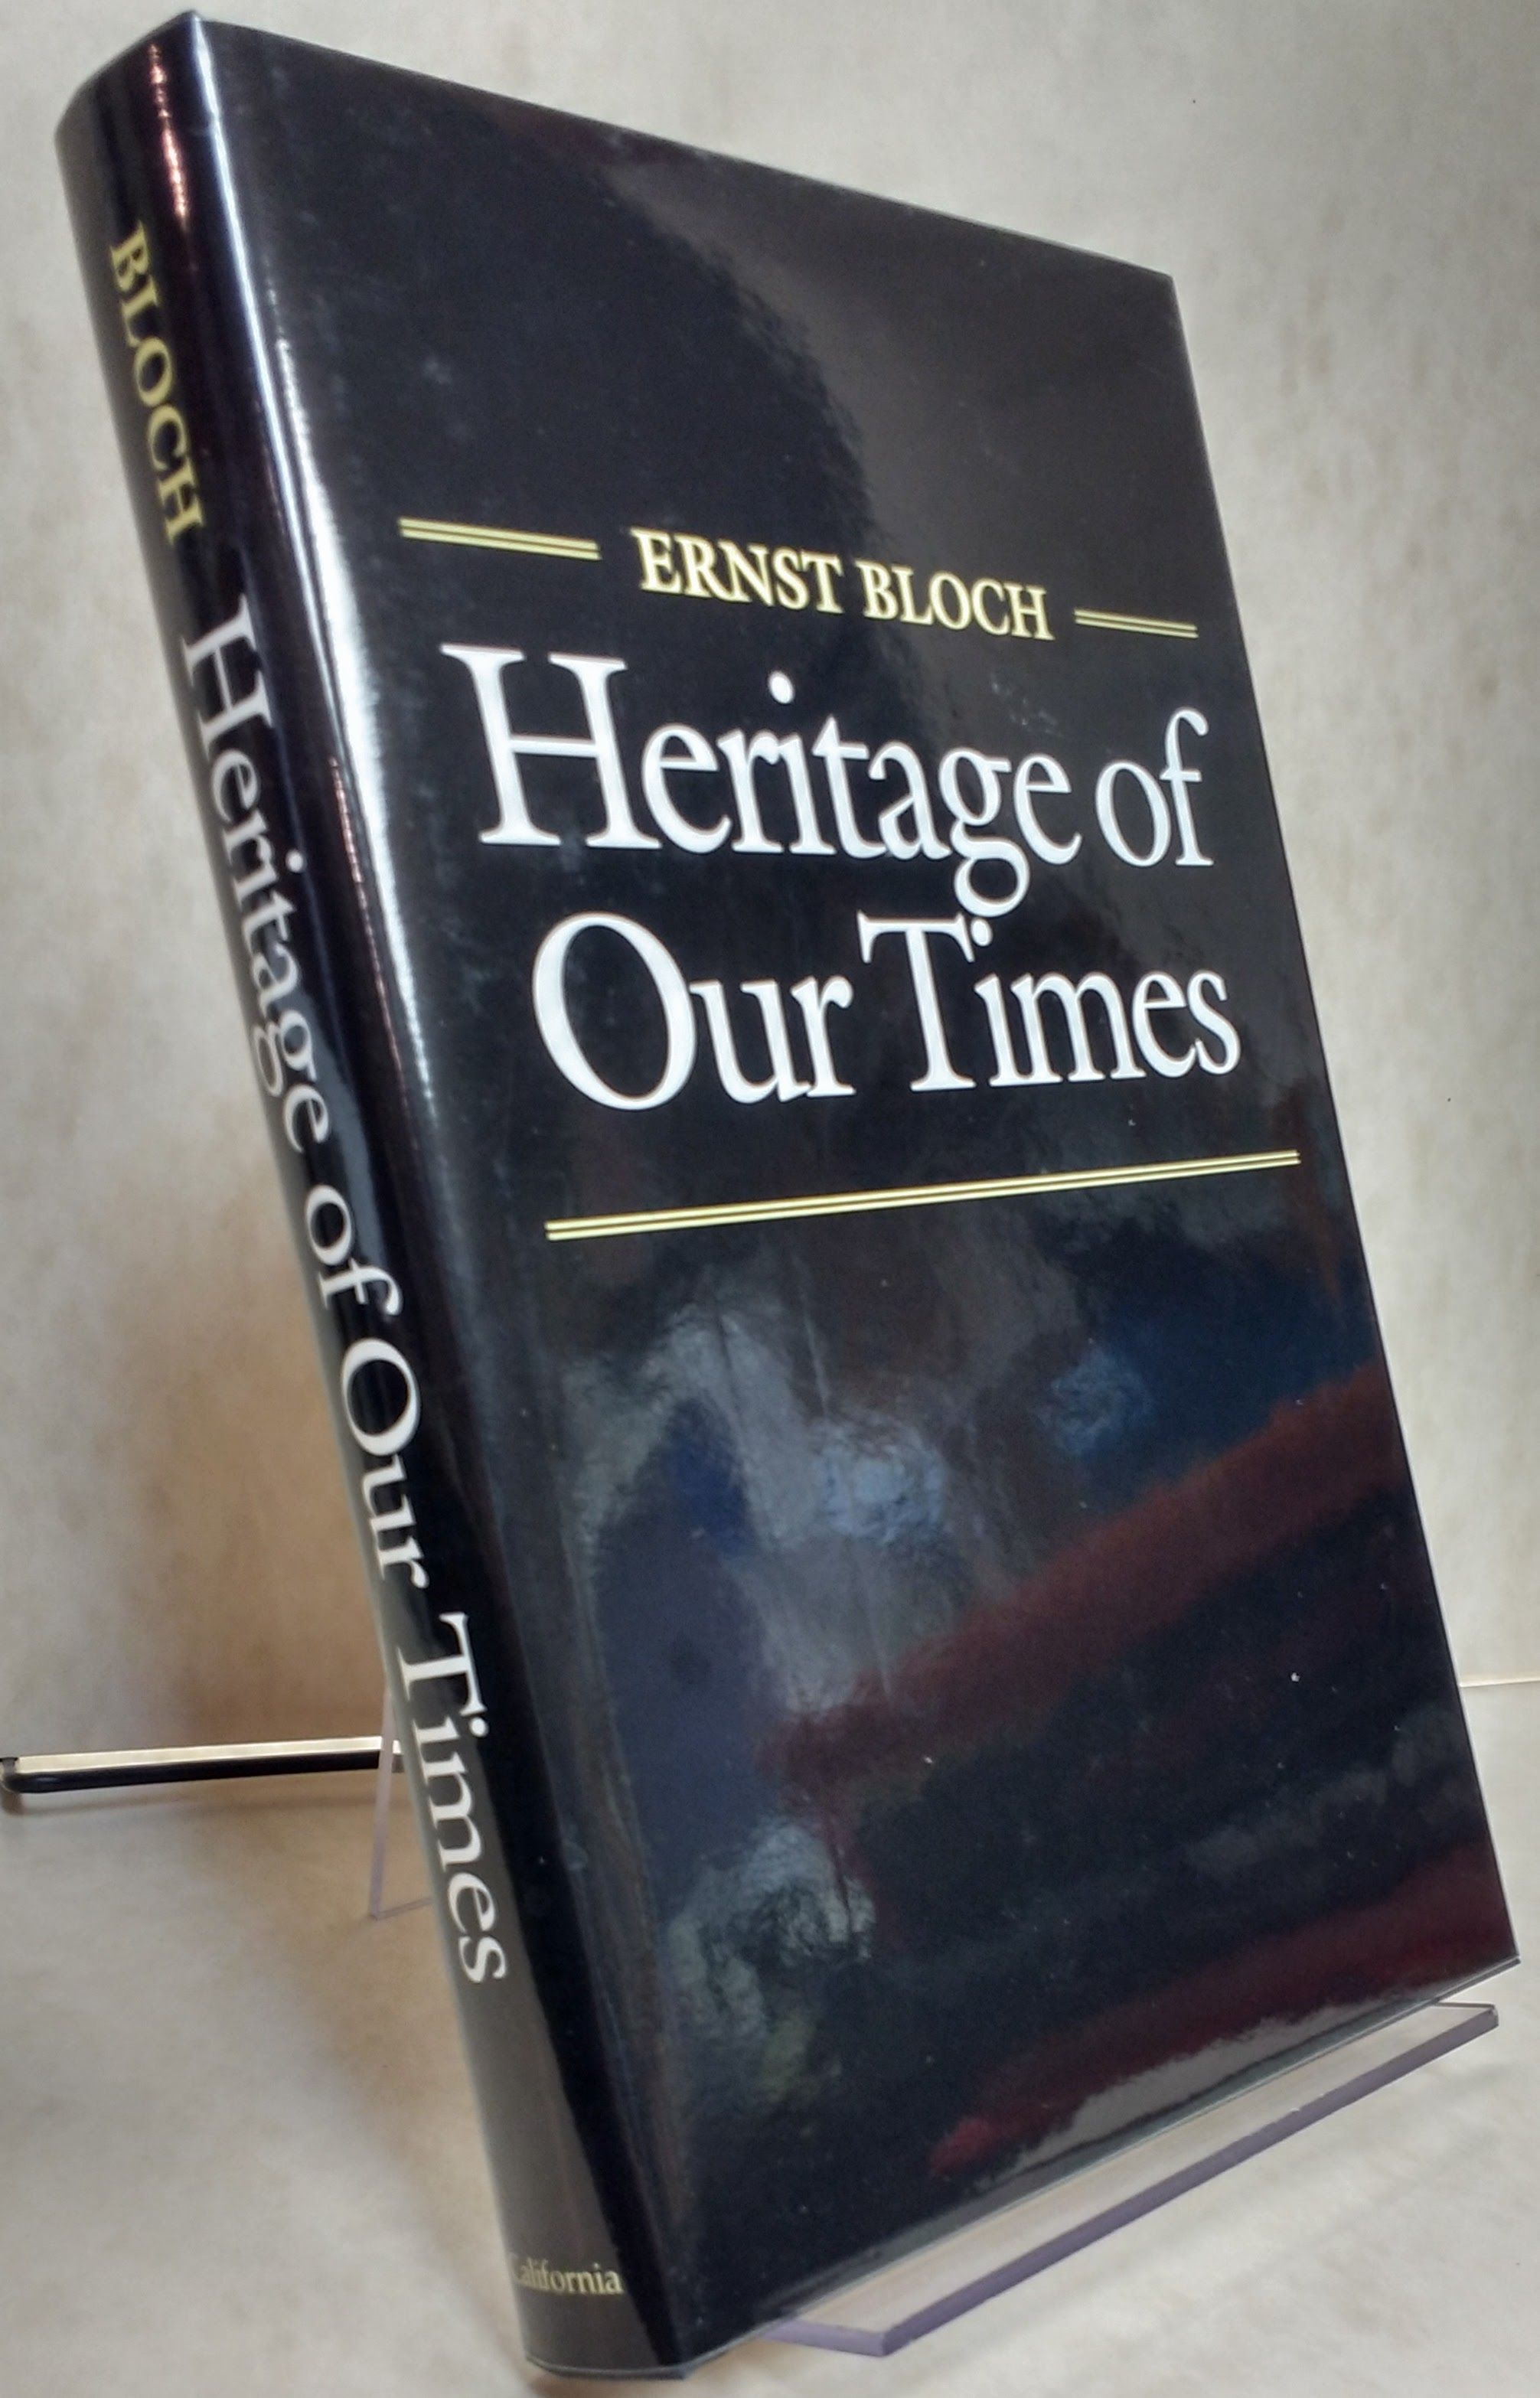 Heritage of Our Times (Weimar and Now: German Cultural Criticism), Bloch, Ernst; Plaice, Neville [Translator]; Plaice, Neville [Introduction]; Plaice, Stephen [Translator]; Plaice, Stephen [Introduction];